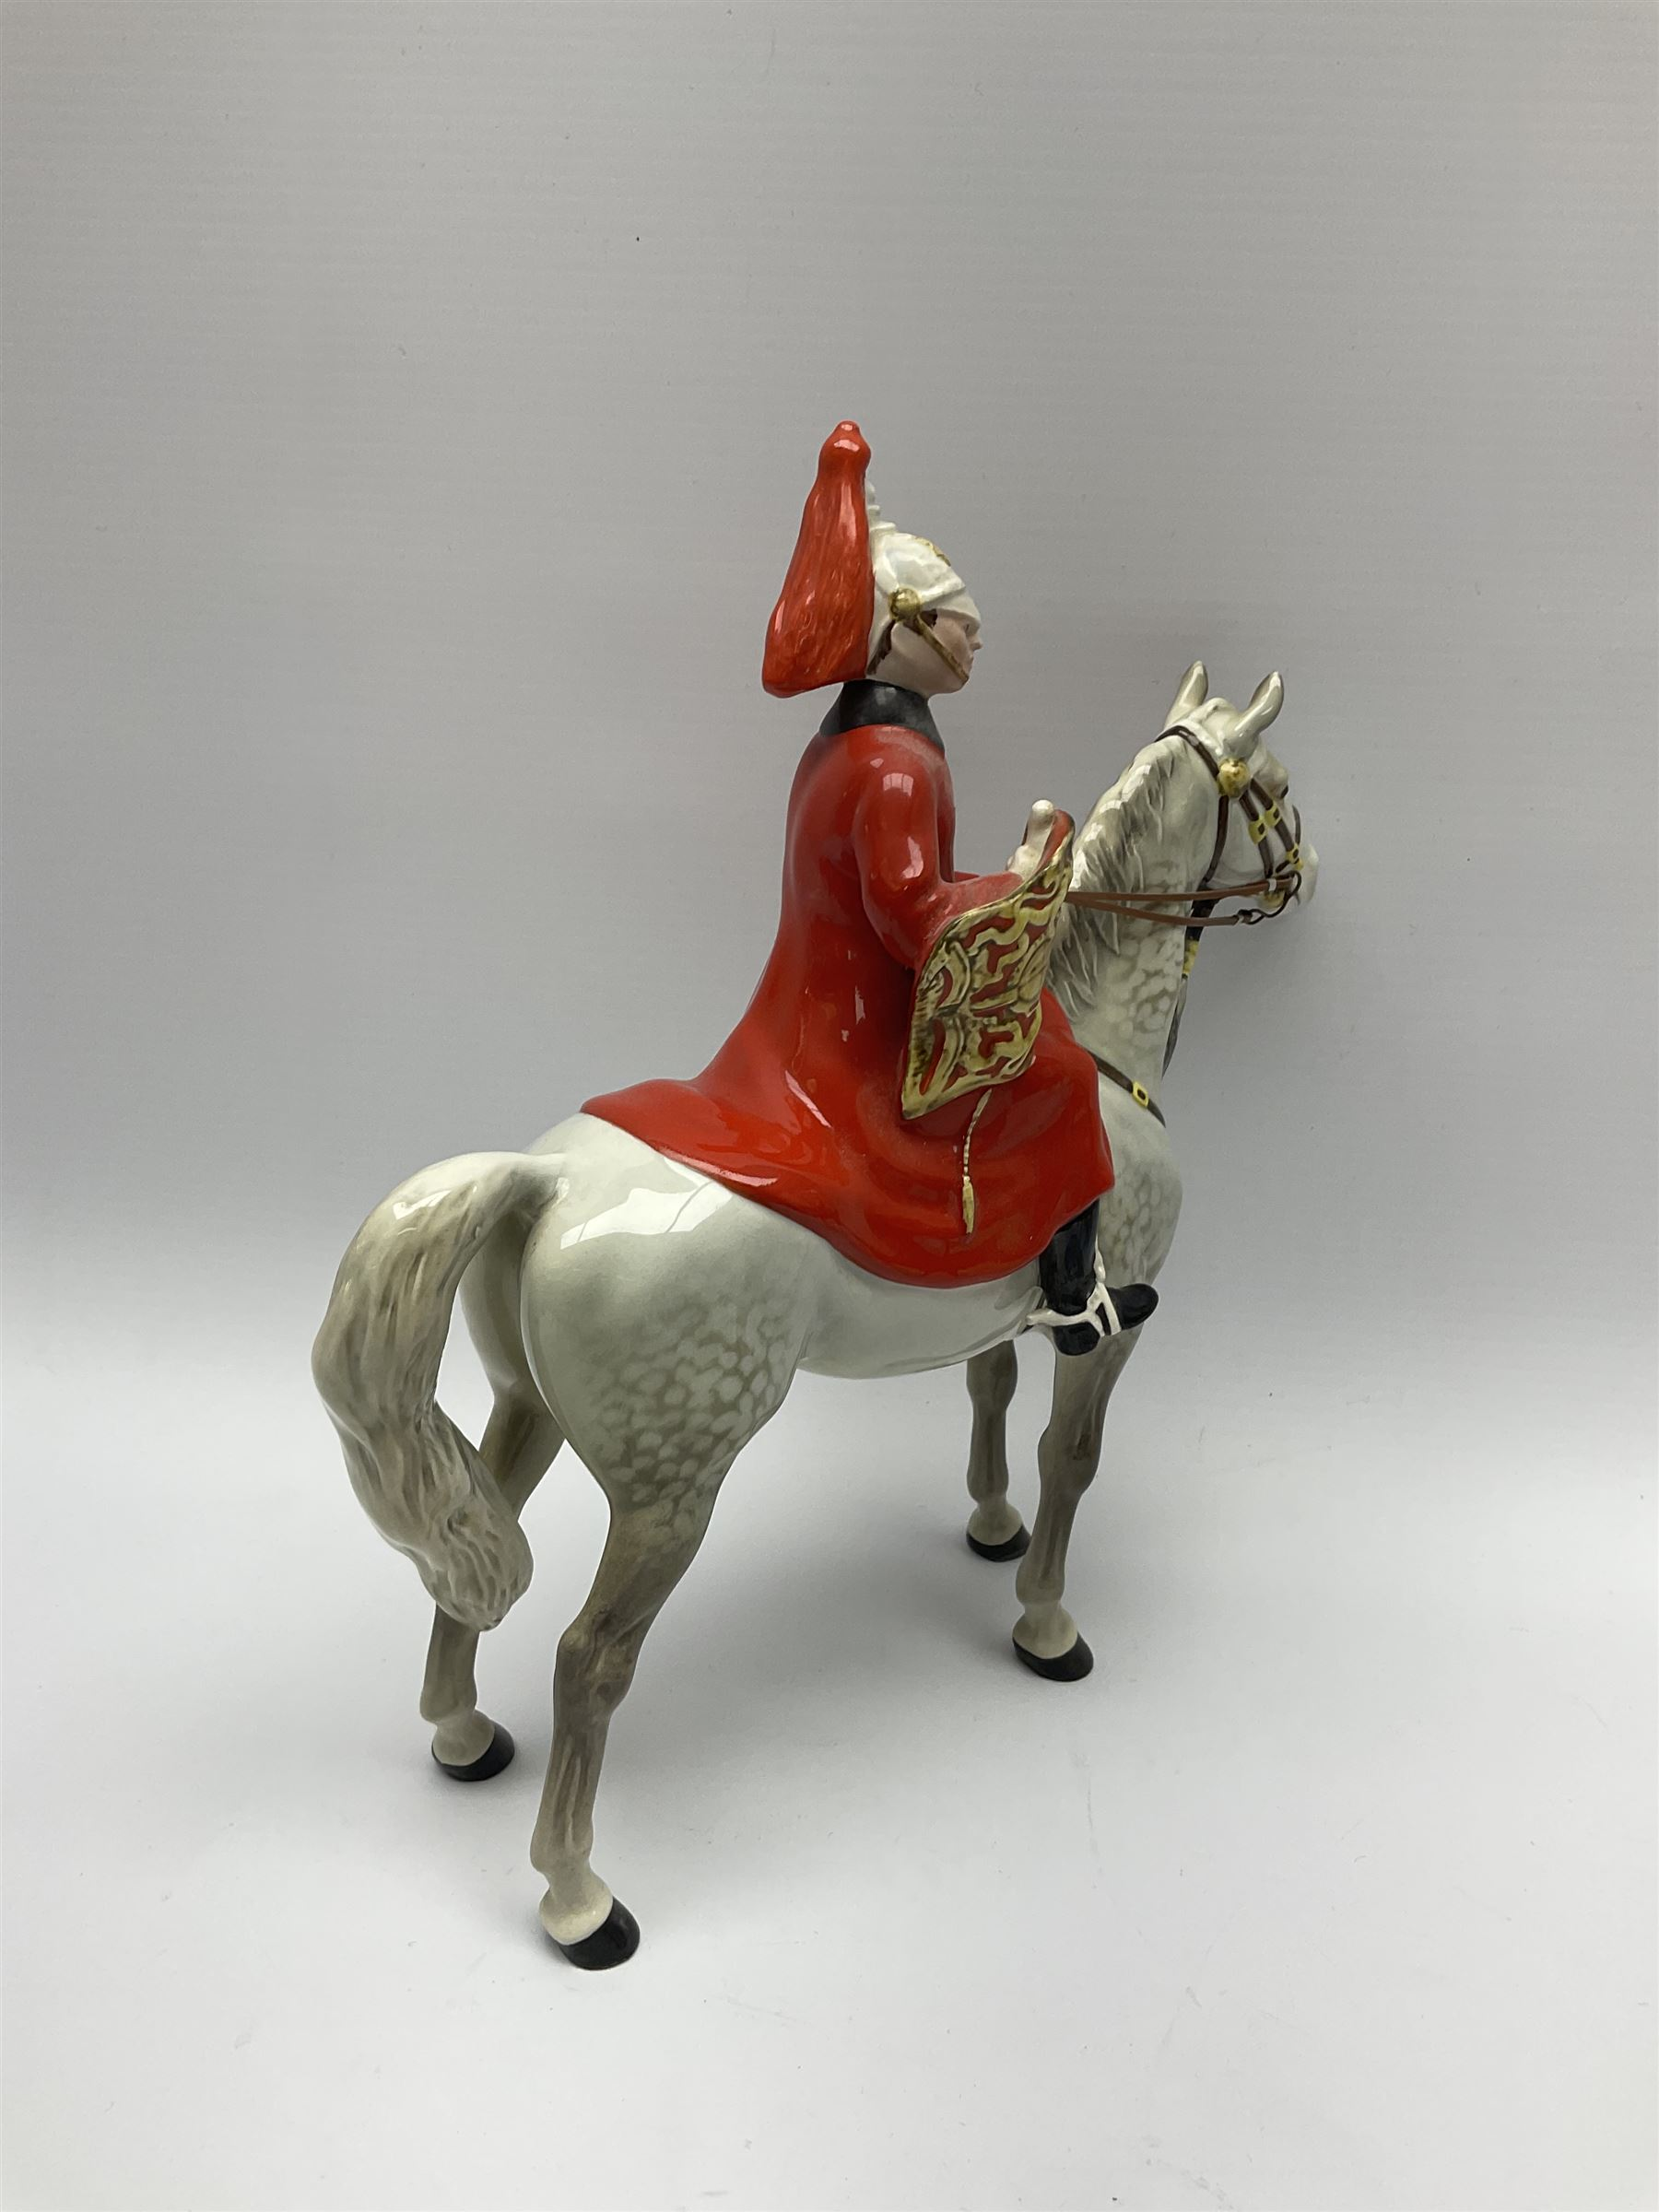 A Beswick model of Lifeguard on grey horse - Image 5 of 7